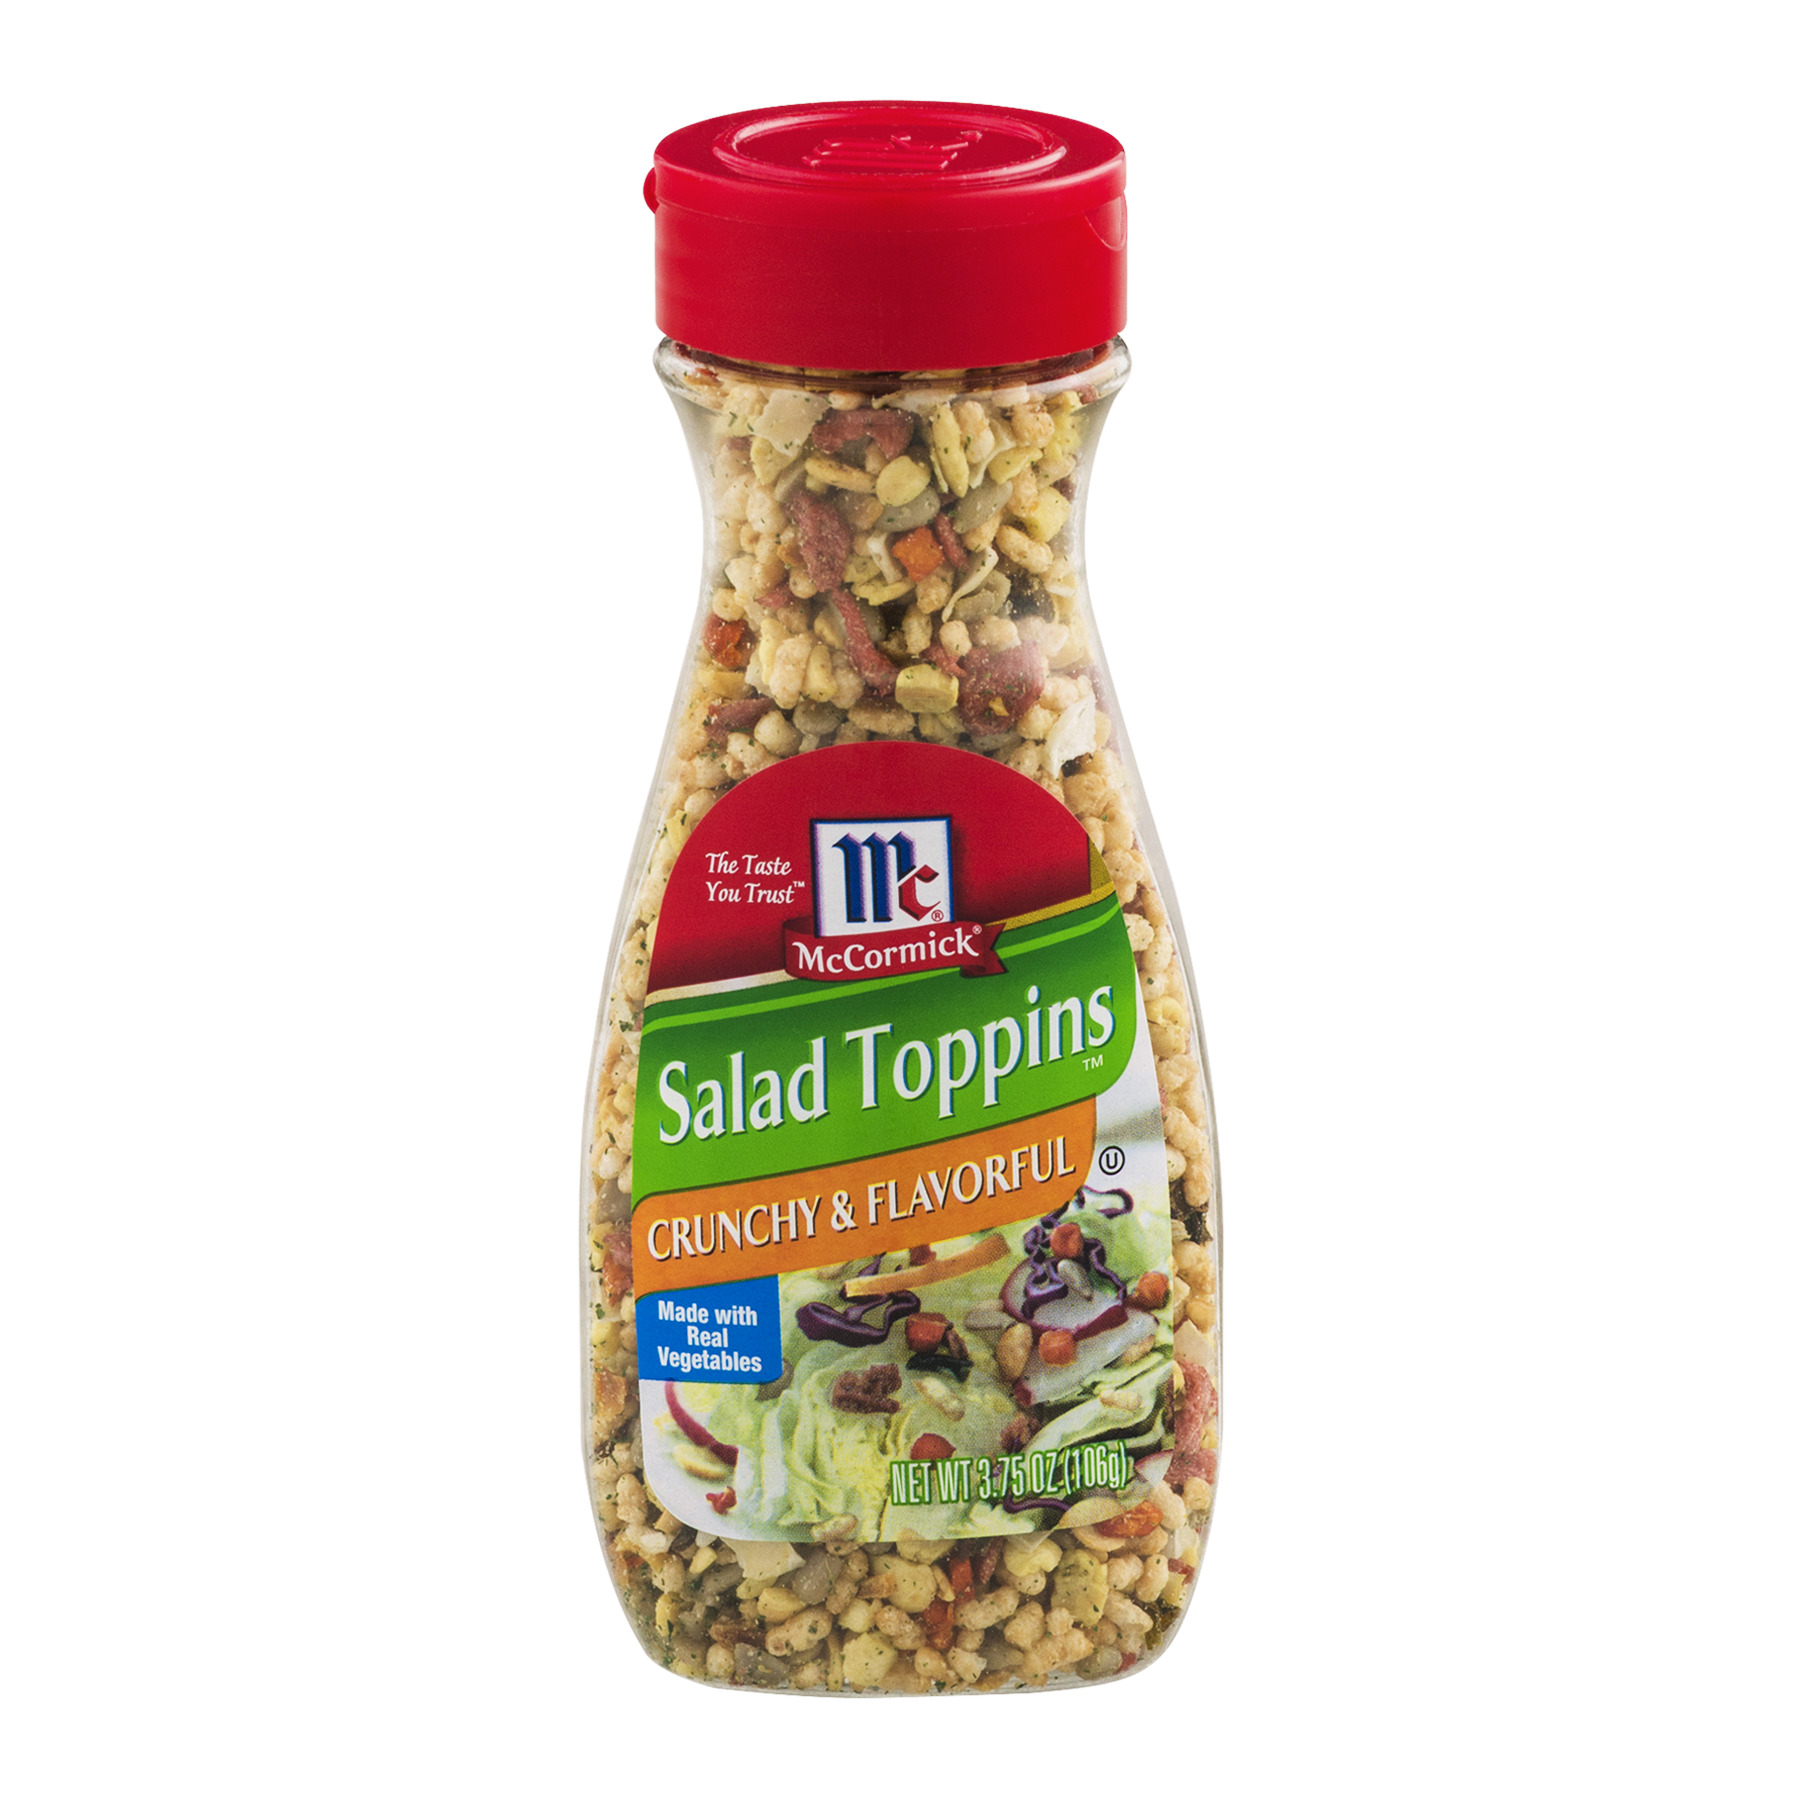 McCormick® Crunchy & Flavorful Salad Toppings, 3.75 OZ